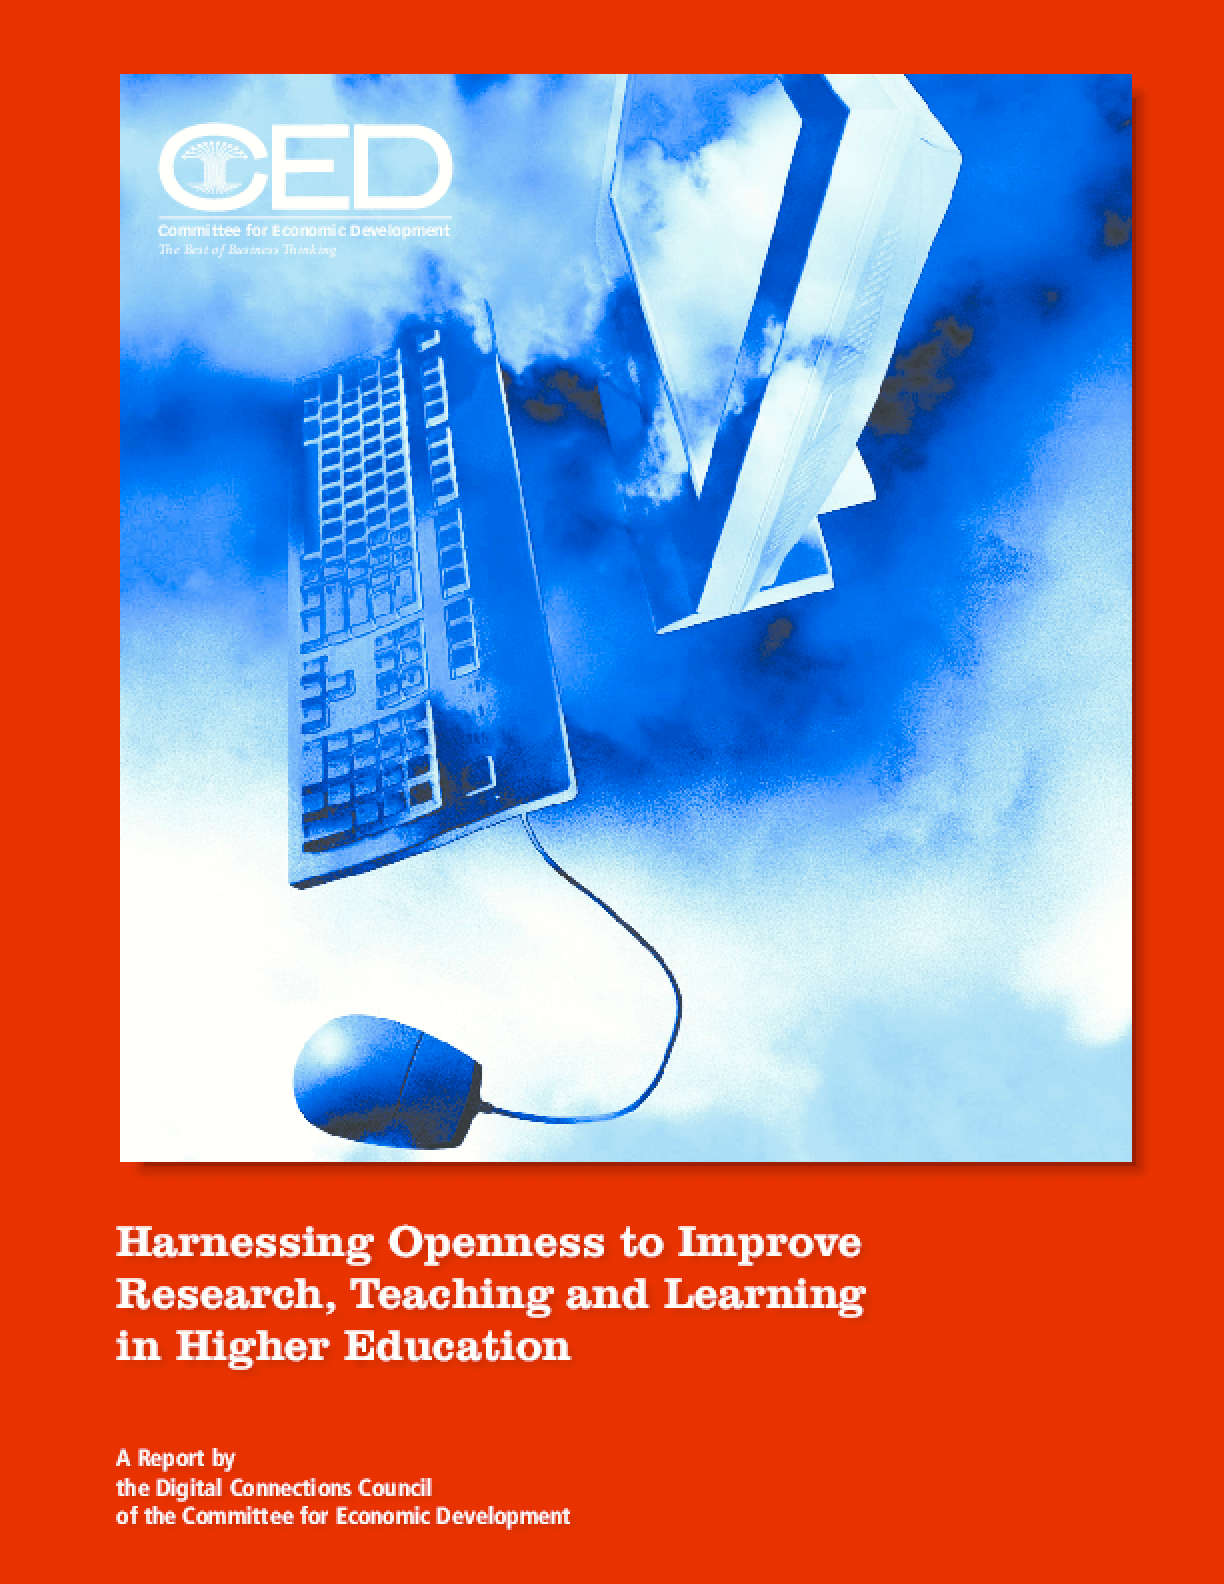 Harnessing Openness to Improve Research, Teaching and Learning in Higher Education